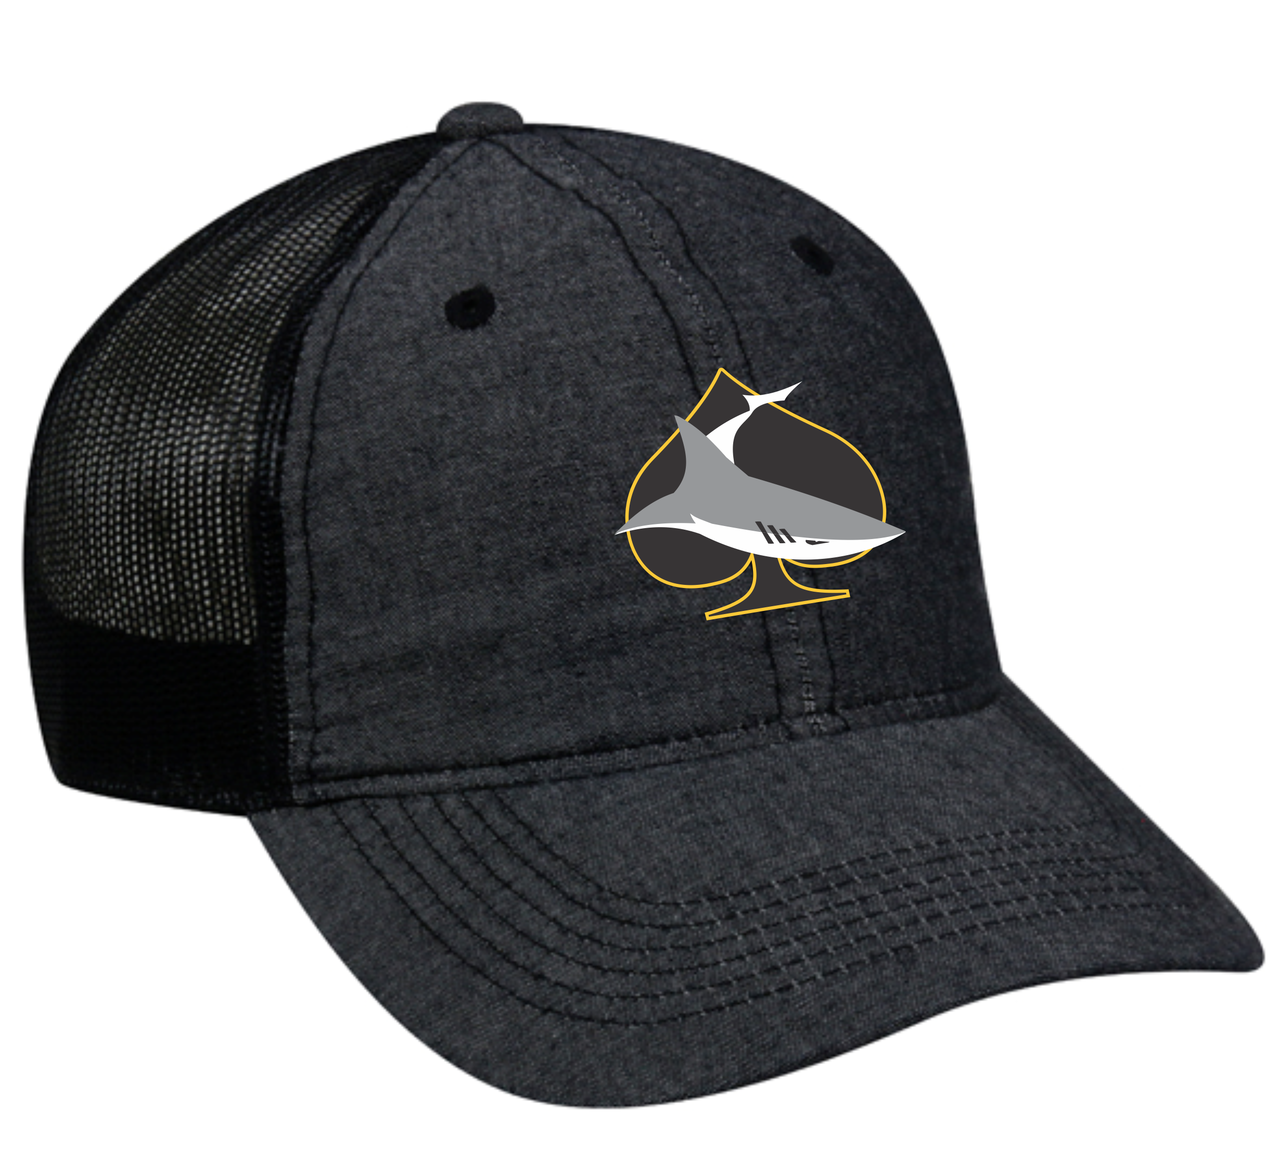 Salisbury Rugby Mesh-Back Adjustable Hat